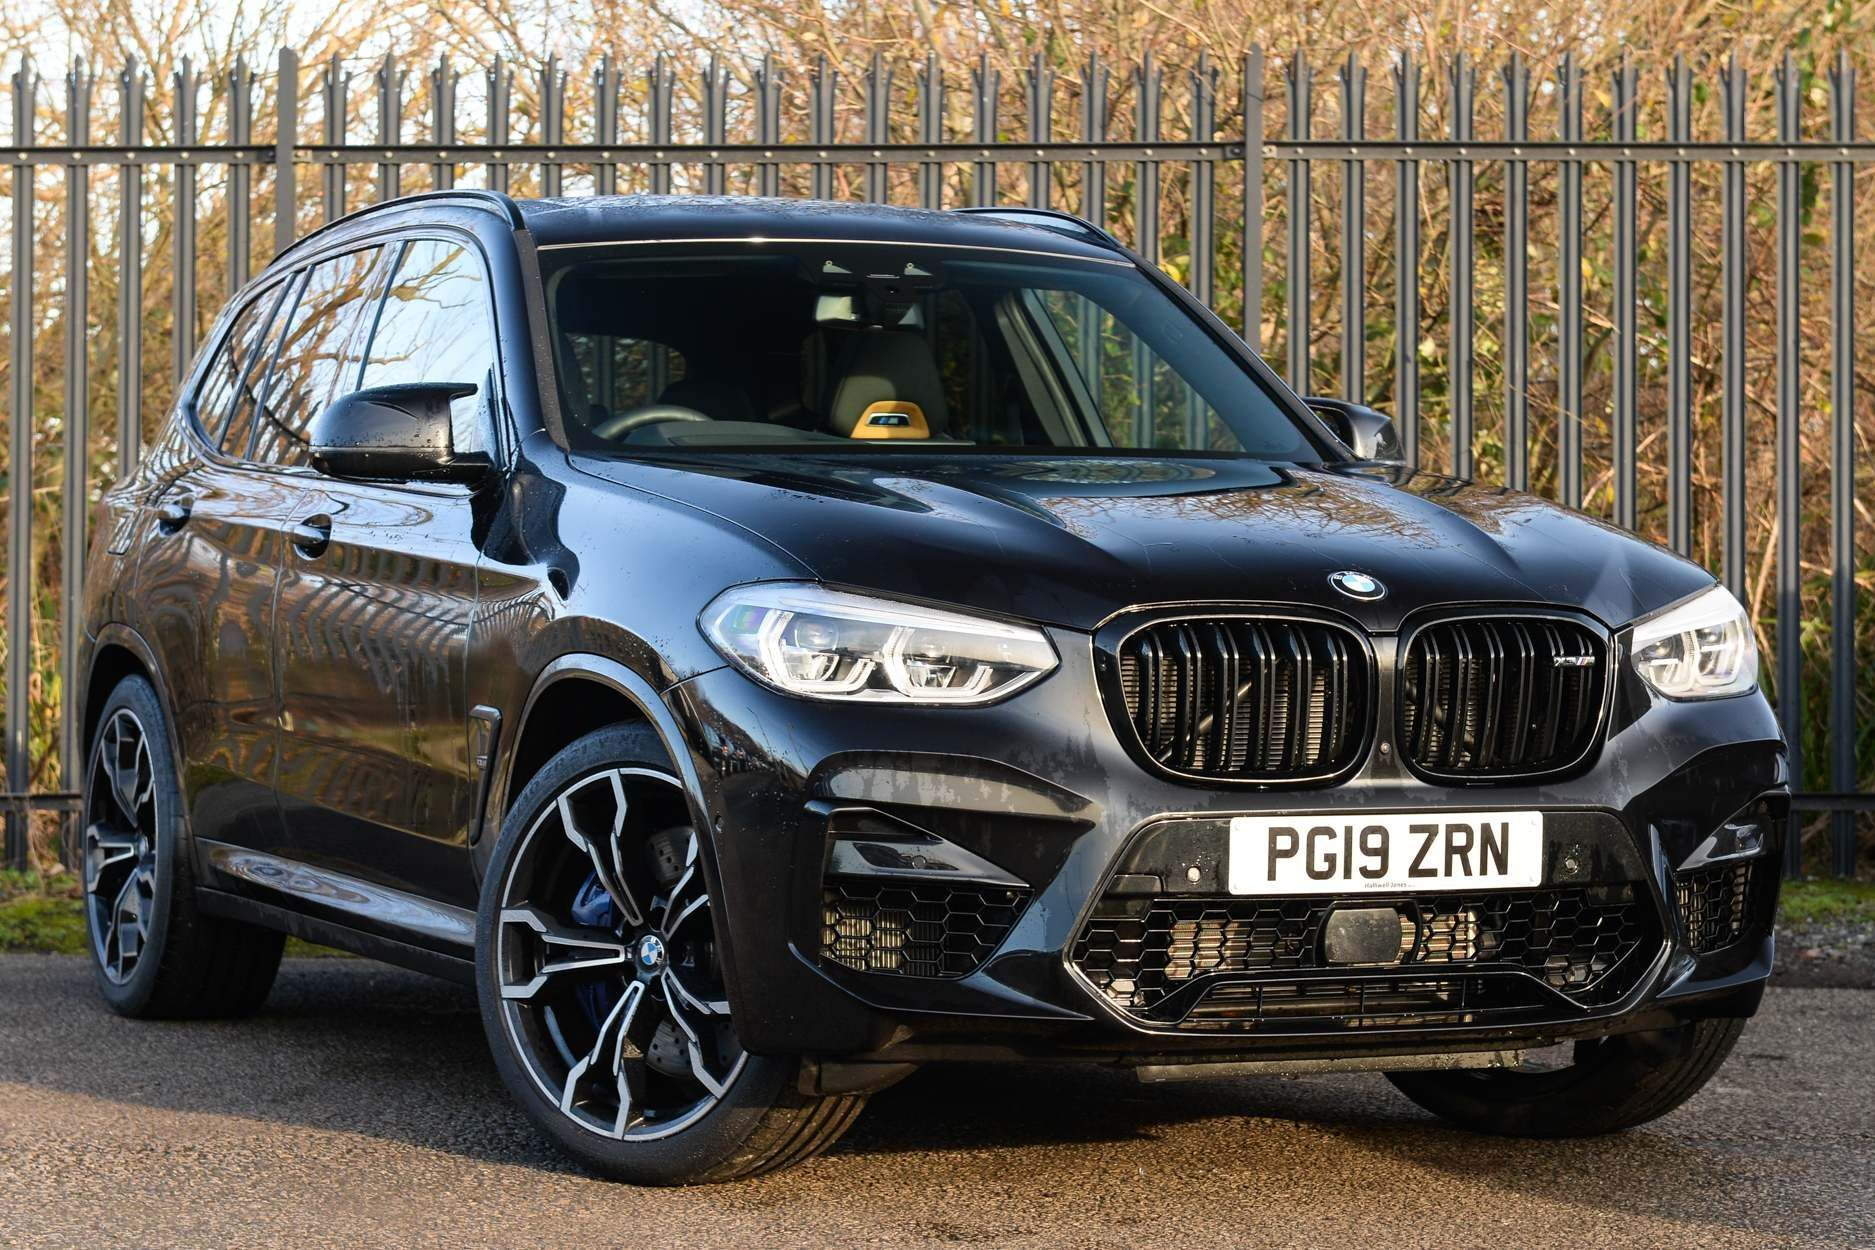 Image 1 - BMW Competition (PG19ZRN)